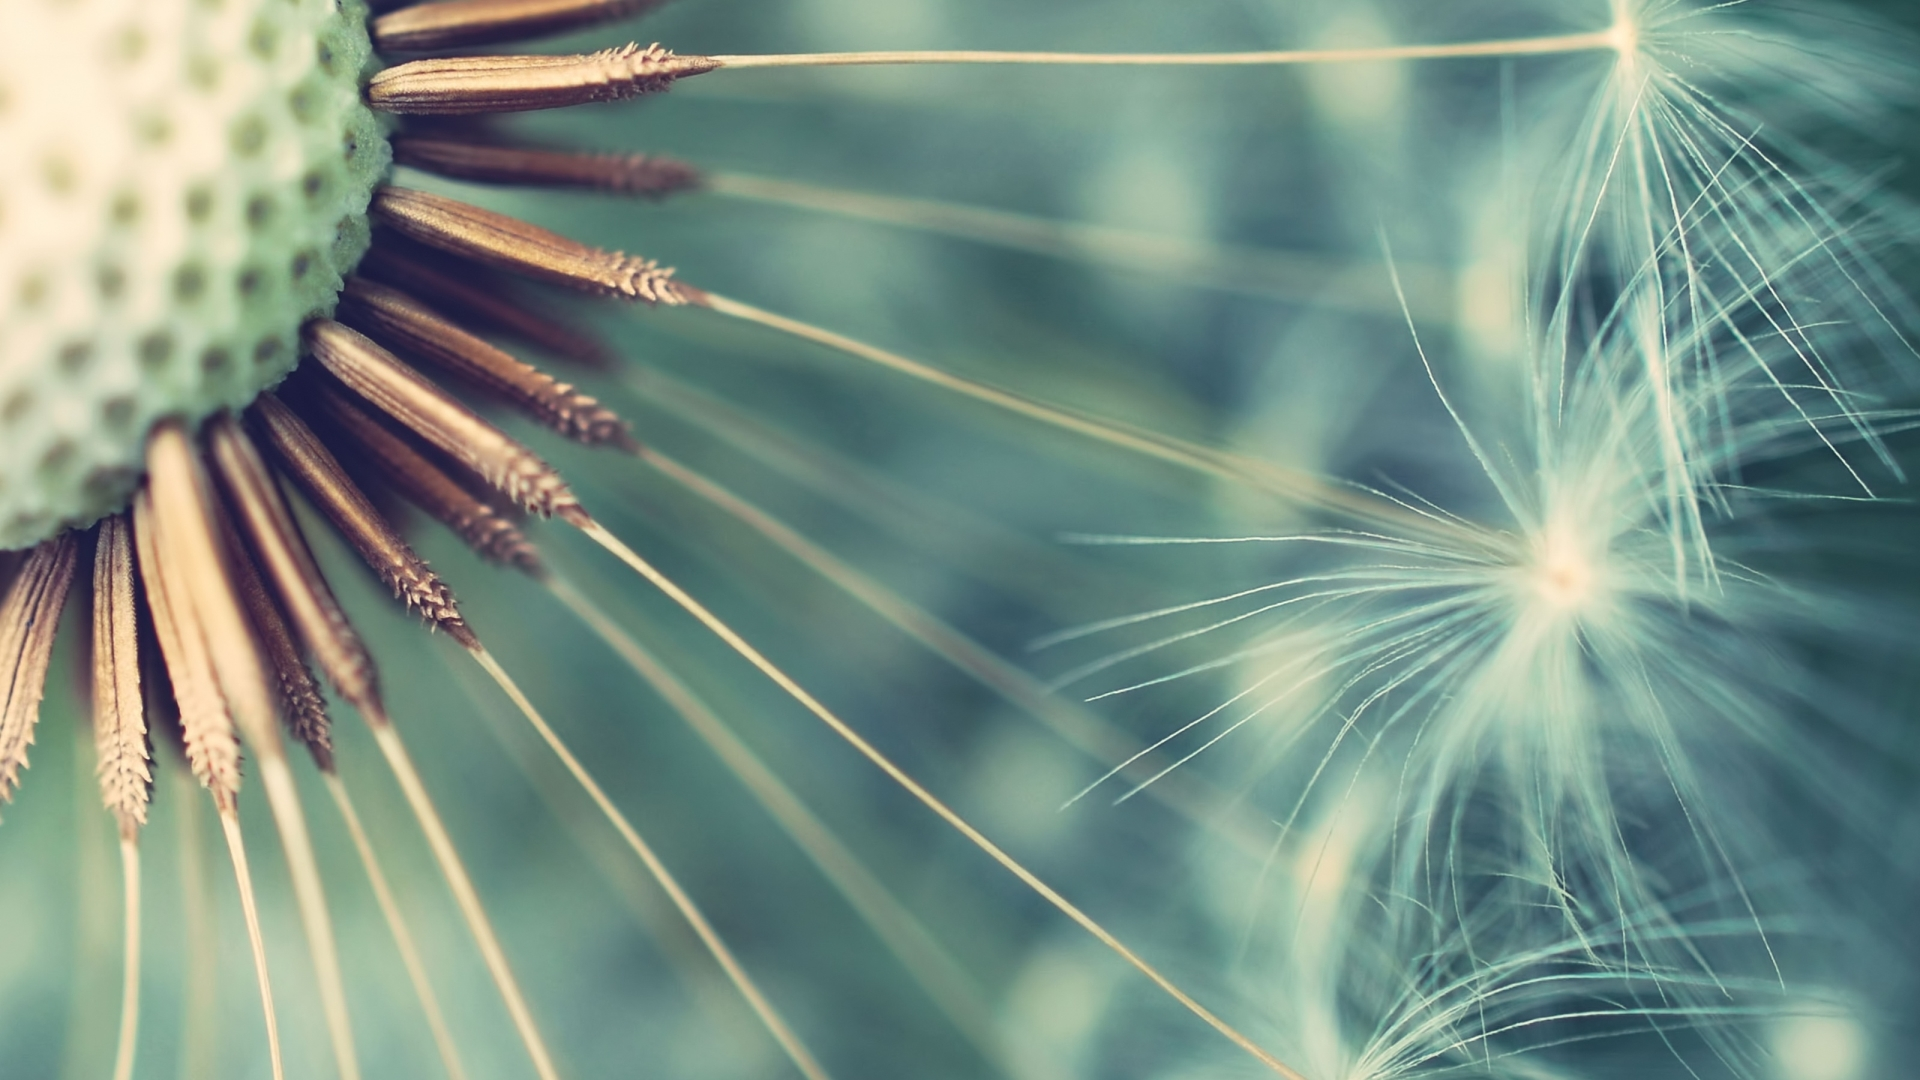 """Download the following Stunning Dandelion Wallpaper 21990 by clicking the orange button positioned underneath the """"Download Wallpaper"""" section."""